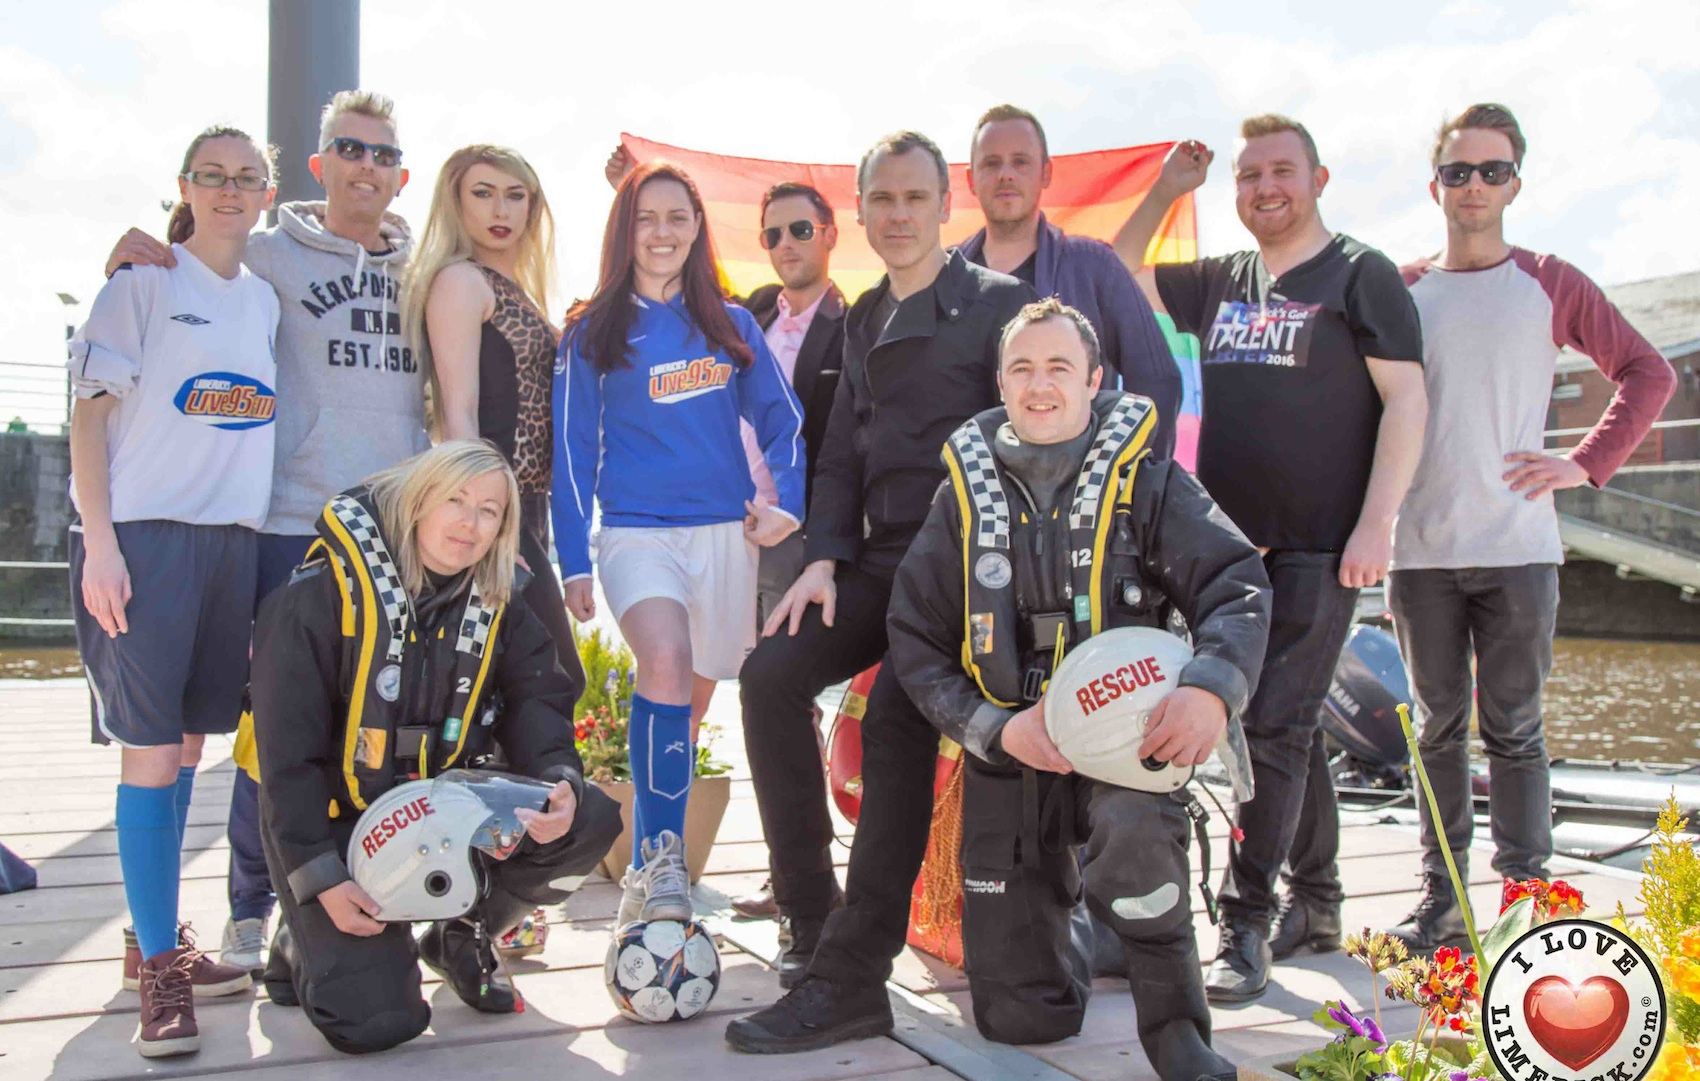 Limerick LGBT Pride Fundraising Day